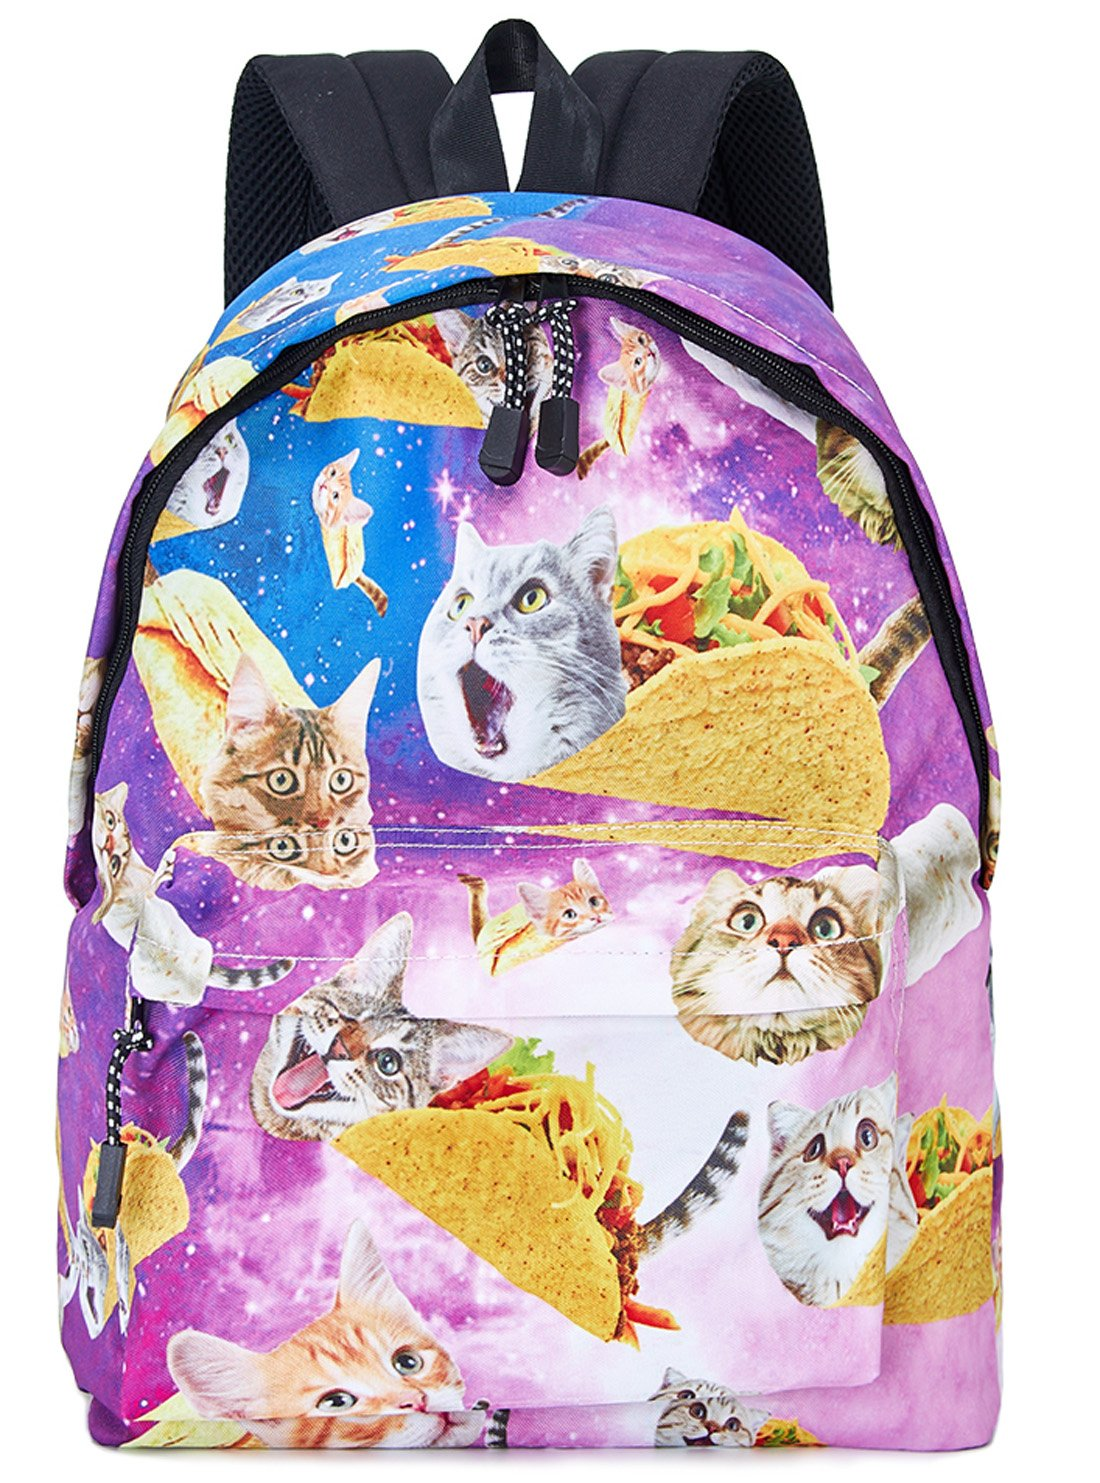 TUONROAD Funny Pizza Cat School Backpack Travel Collection 3D Game Printing Unisex School Bag